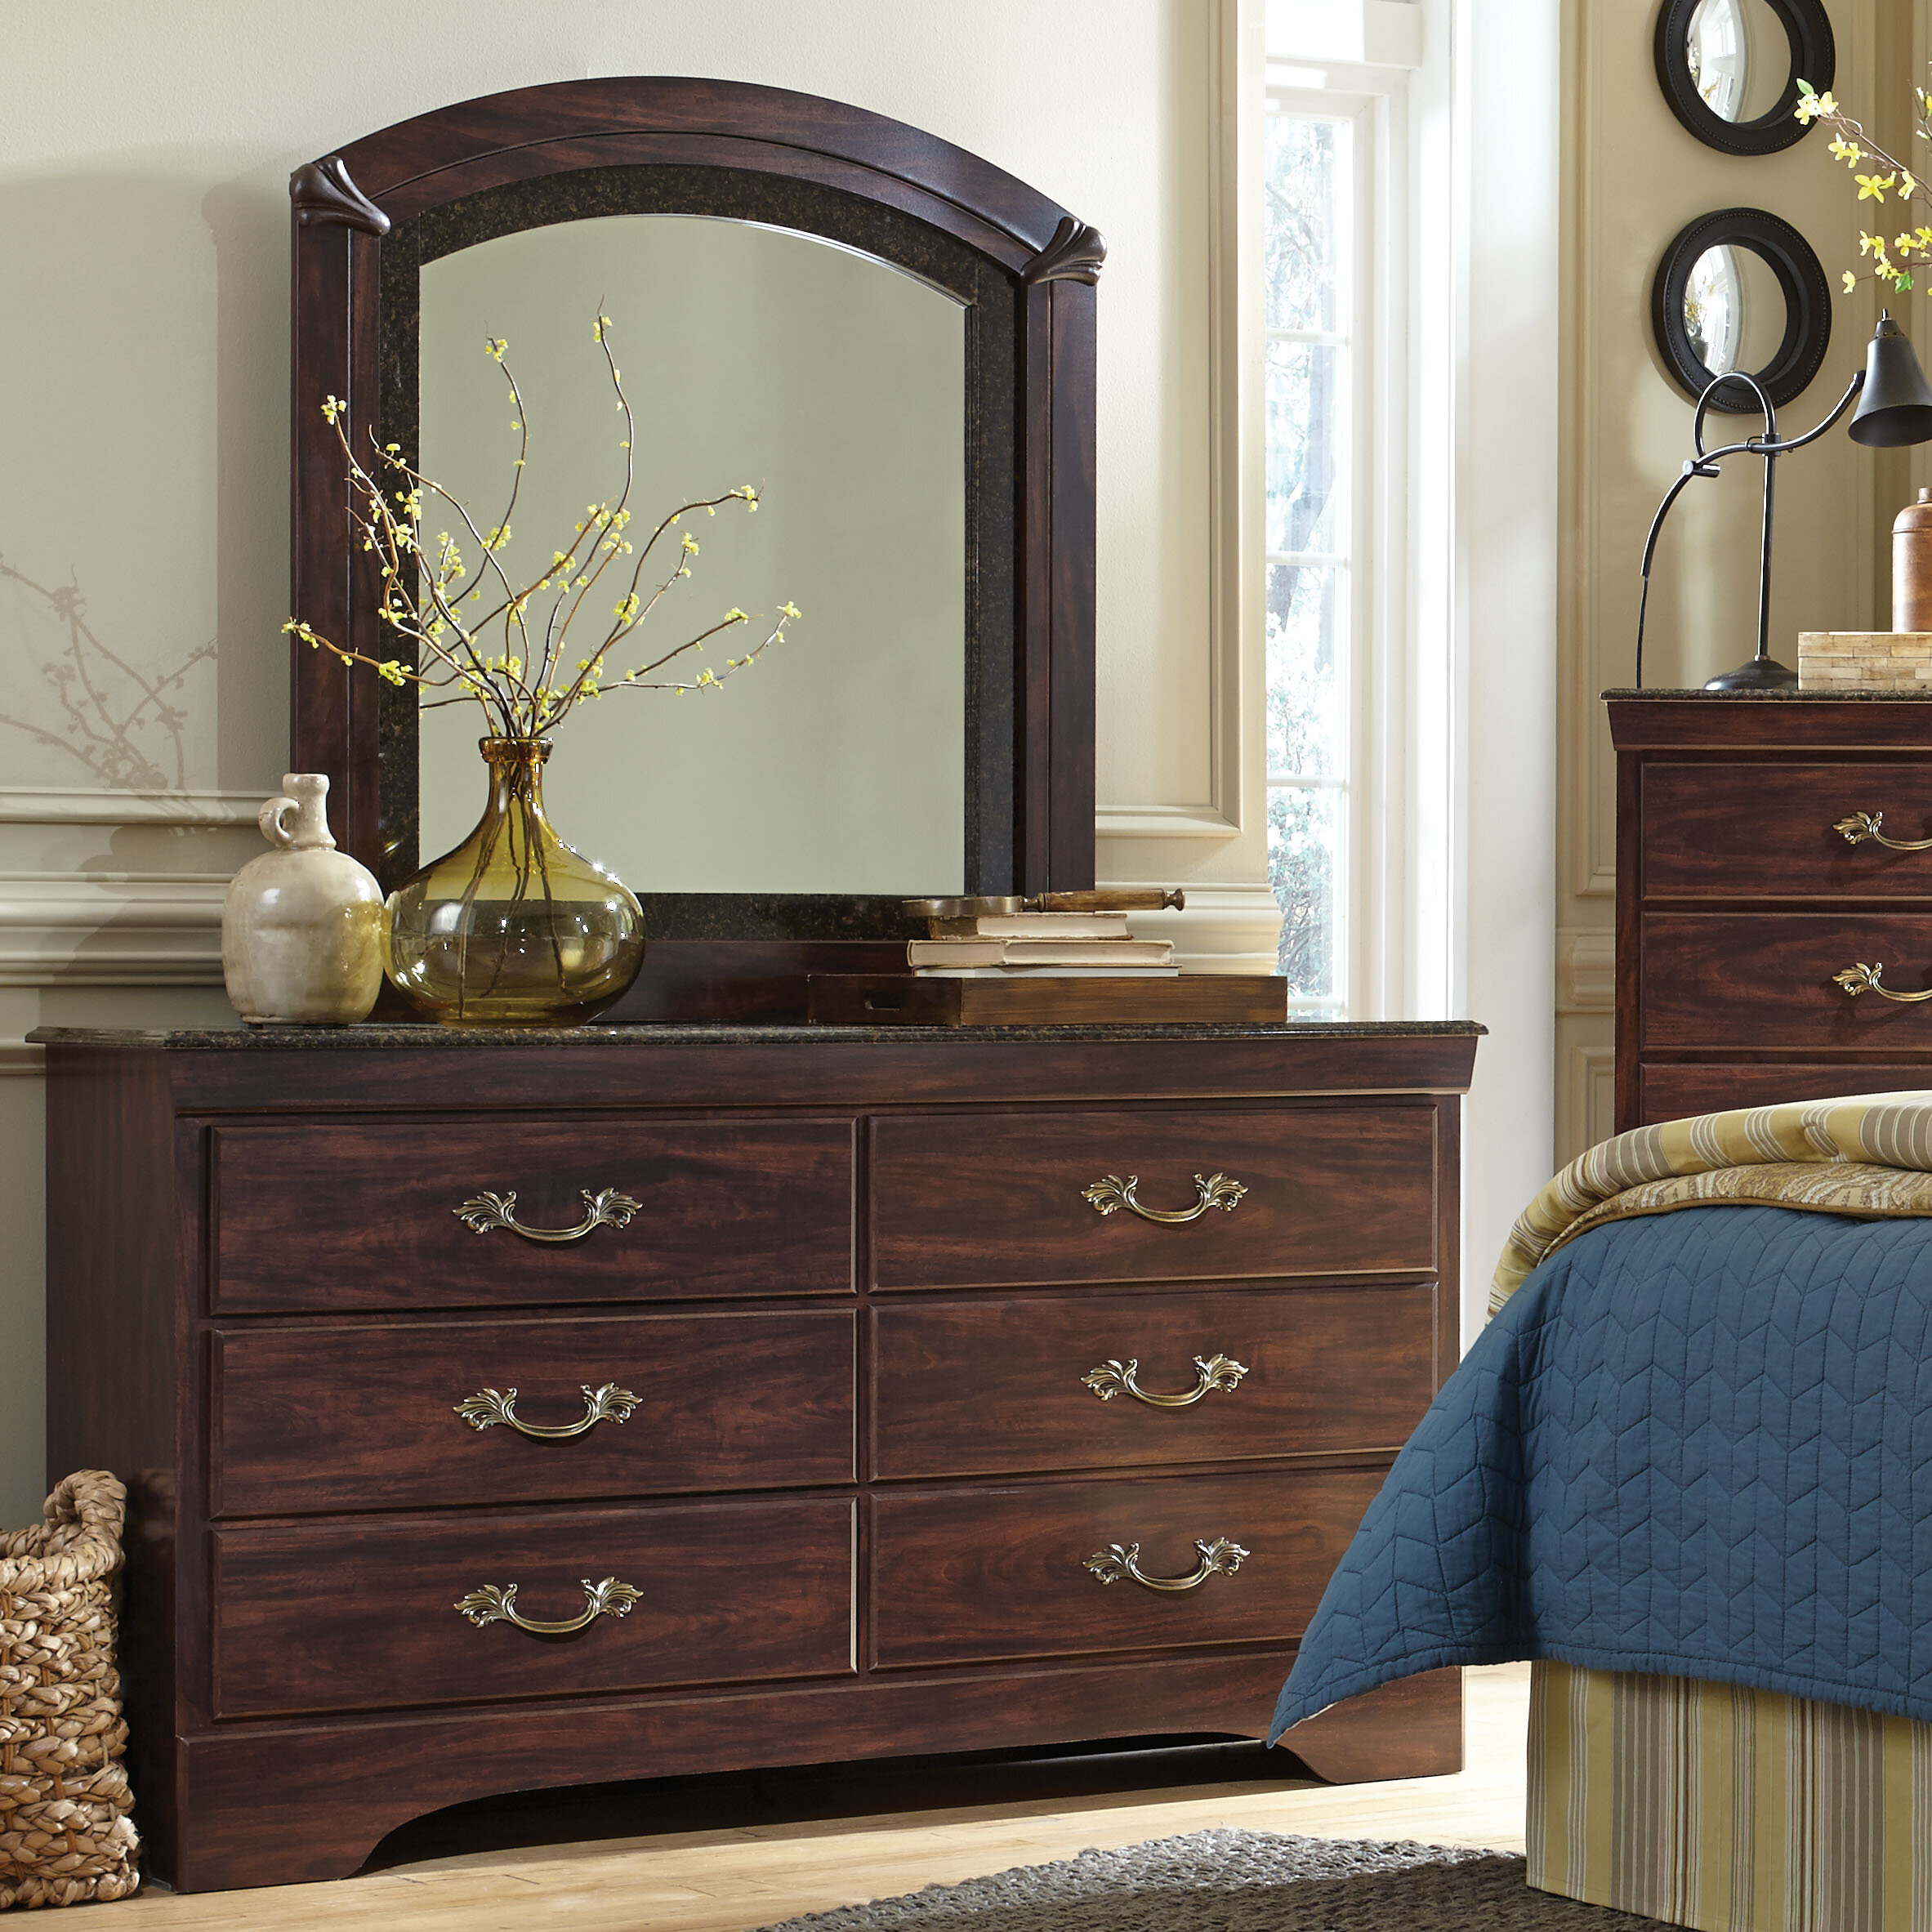 by bedroom dresser chest top asp and of bassett dressers drawer drawers wood furniture